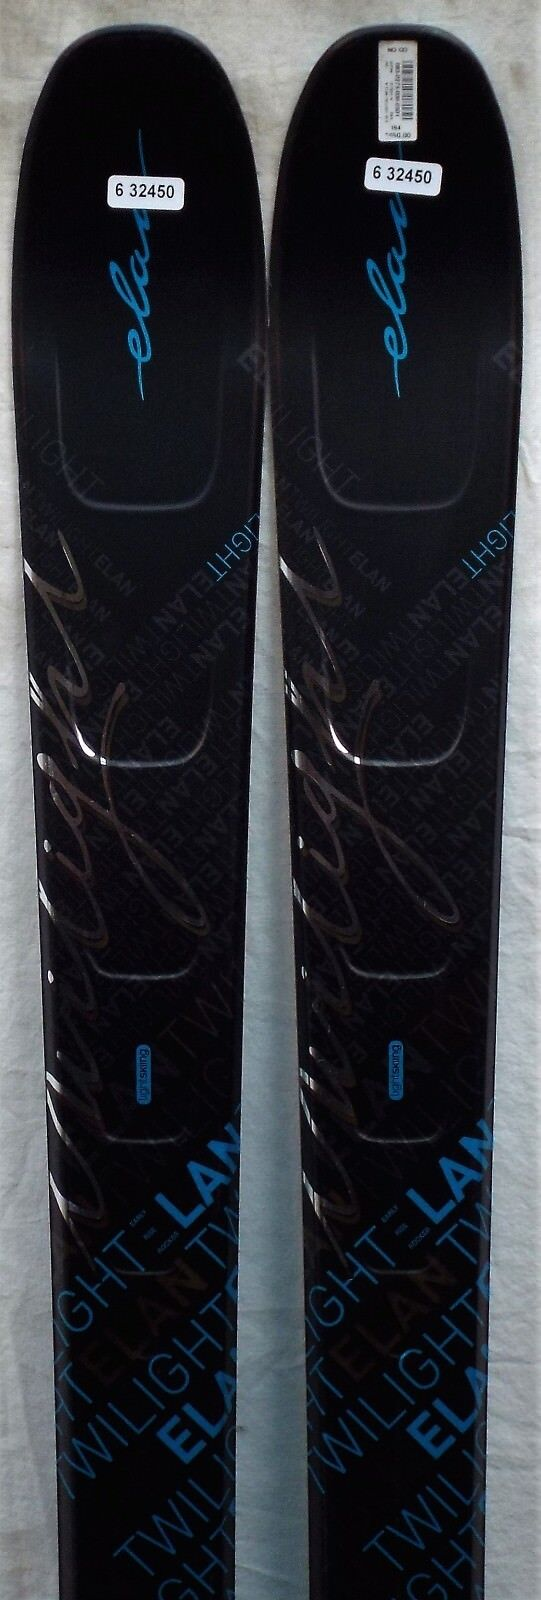 14-15 Elan Twilight 90 New  Women's Skis Size 164cm  hottest new styles